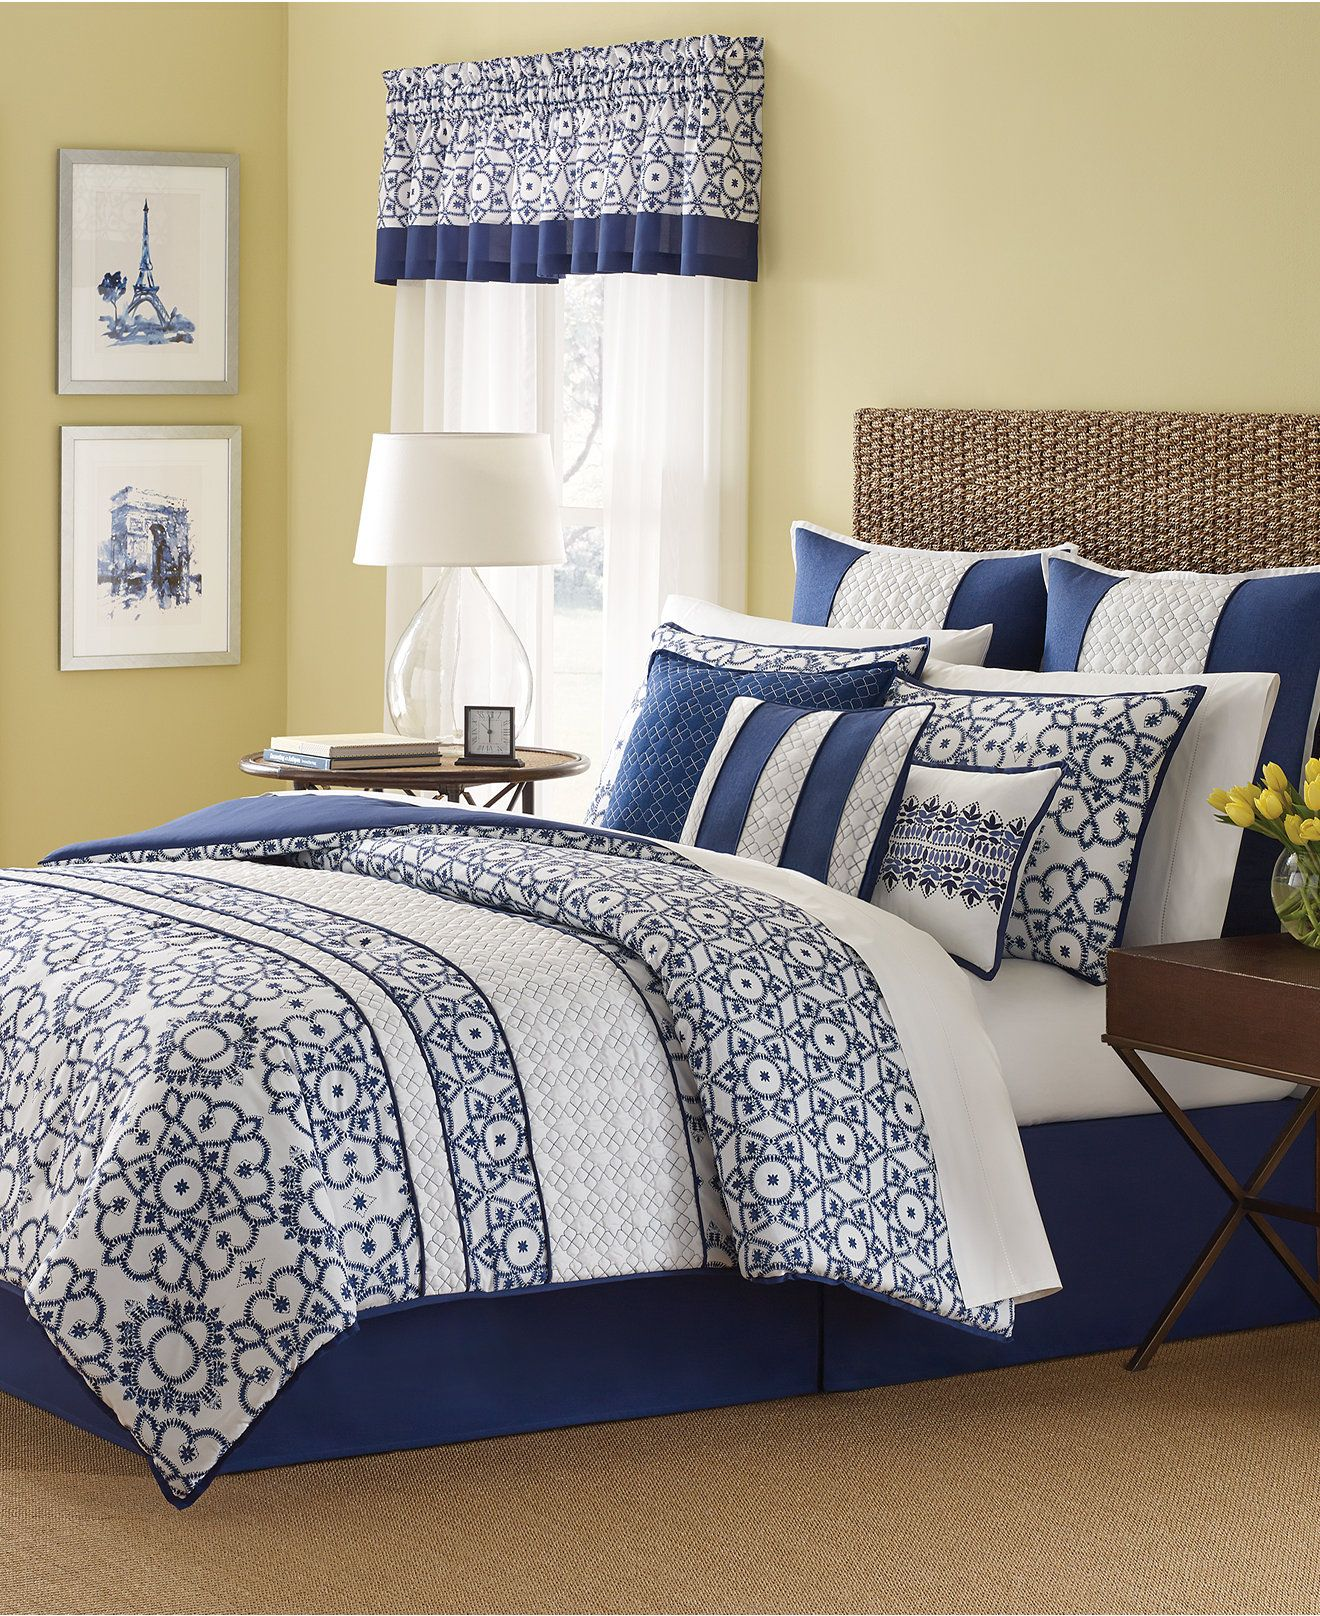 set scroll today oliver product shipping overstock chic comforter james oppenheim home free bedding antonio bath fabric piece jacquard